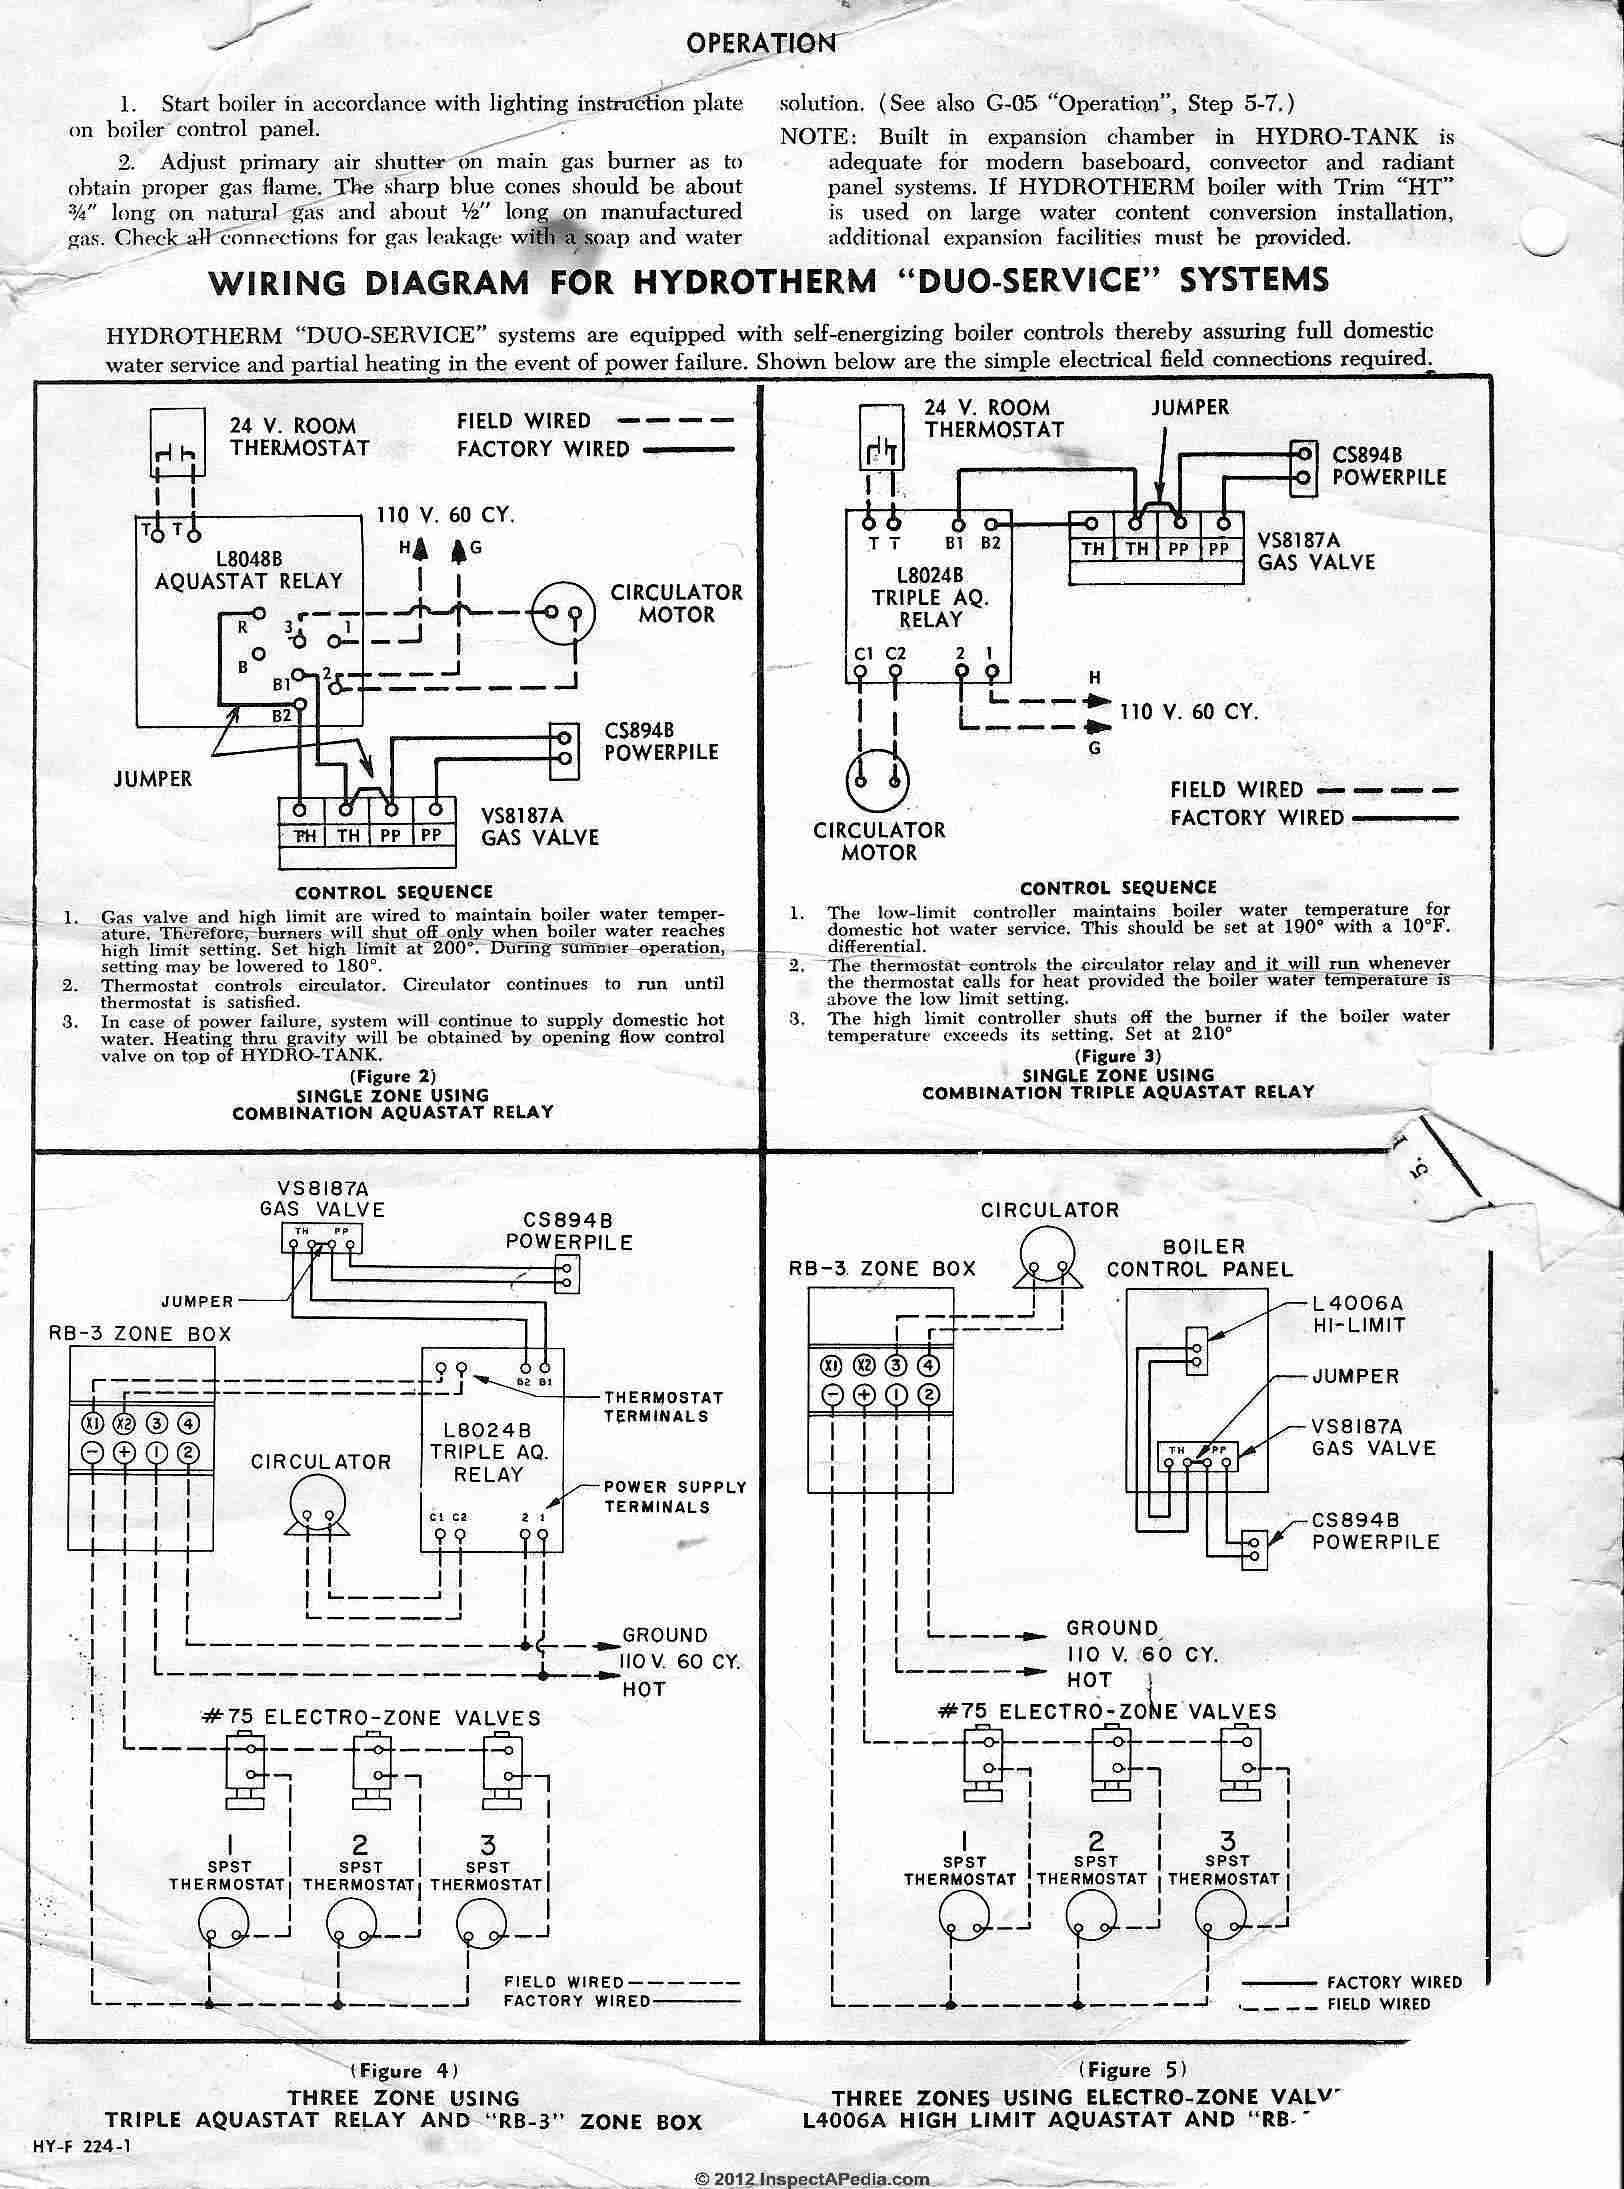 Heating Boiler Aquastat Control Diagnosis, Troubleshooting, Repair - Nest Wiring Diagram From 8124 Aquastat And 24V Transformer